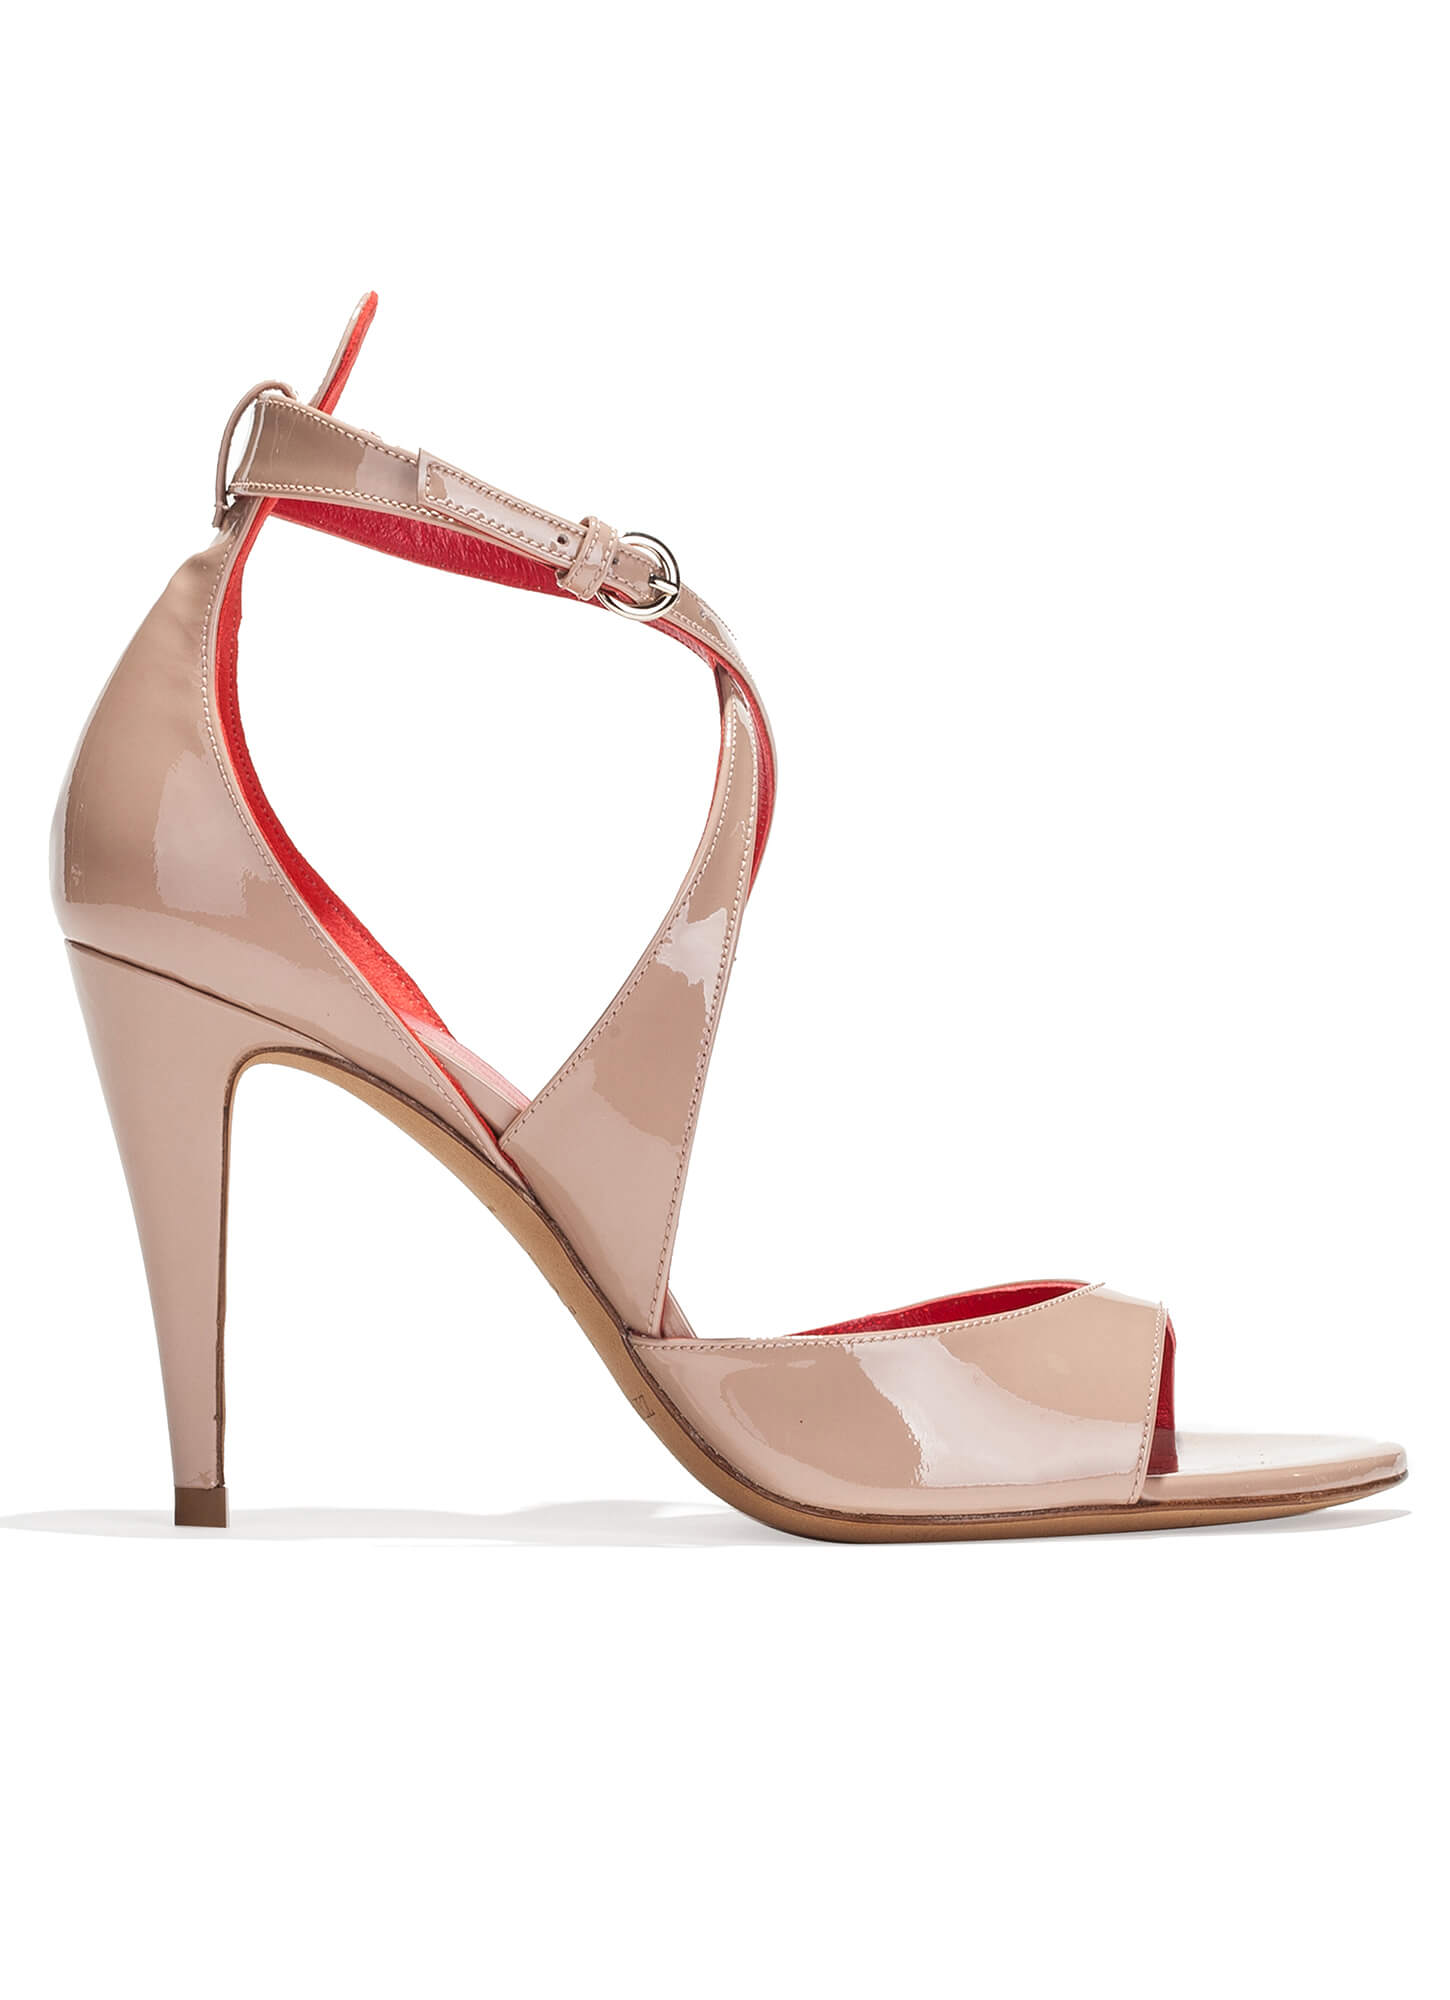 Prada Nude Patent Leather High Heel Slingback Sandals with